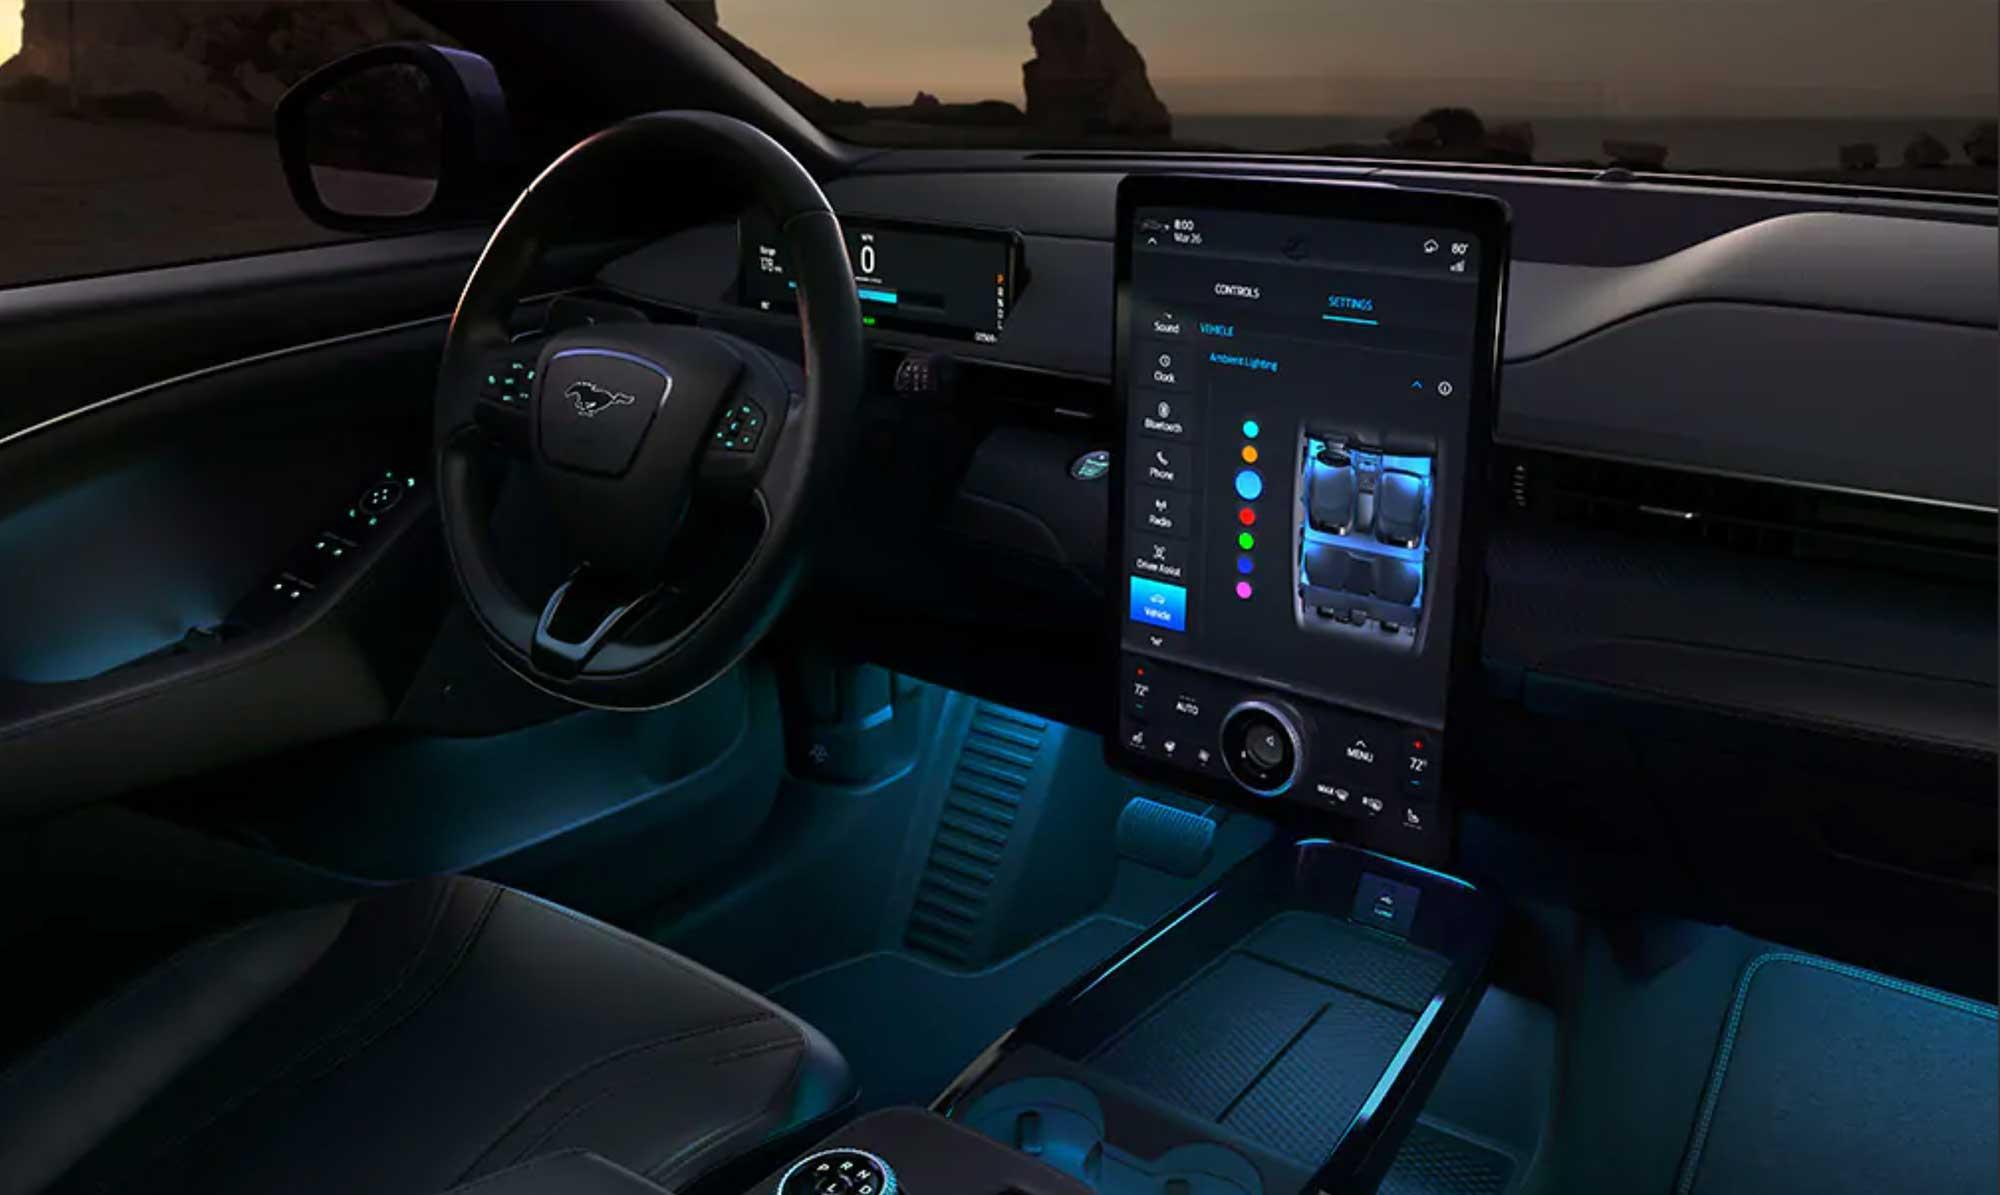 Immerse yourself in the 2021 Ford Mustang Mach-E unique interior.